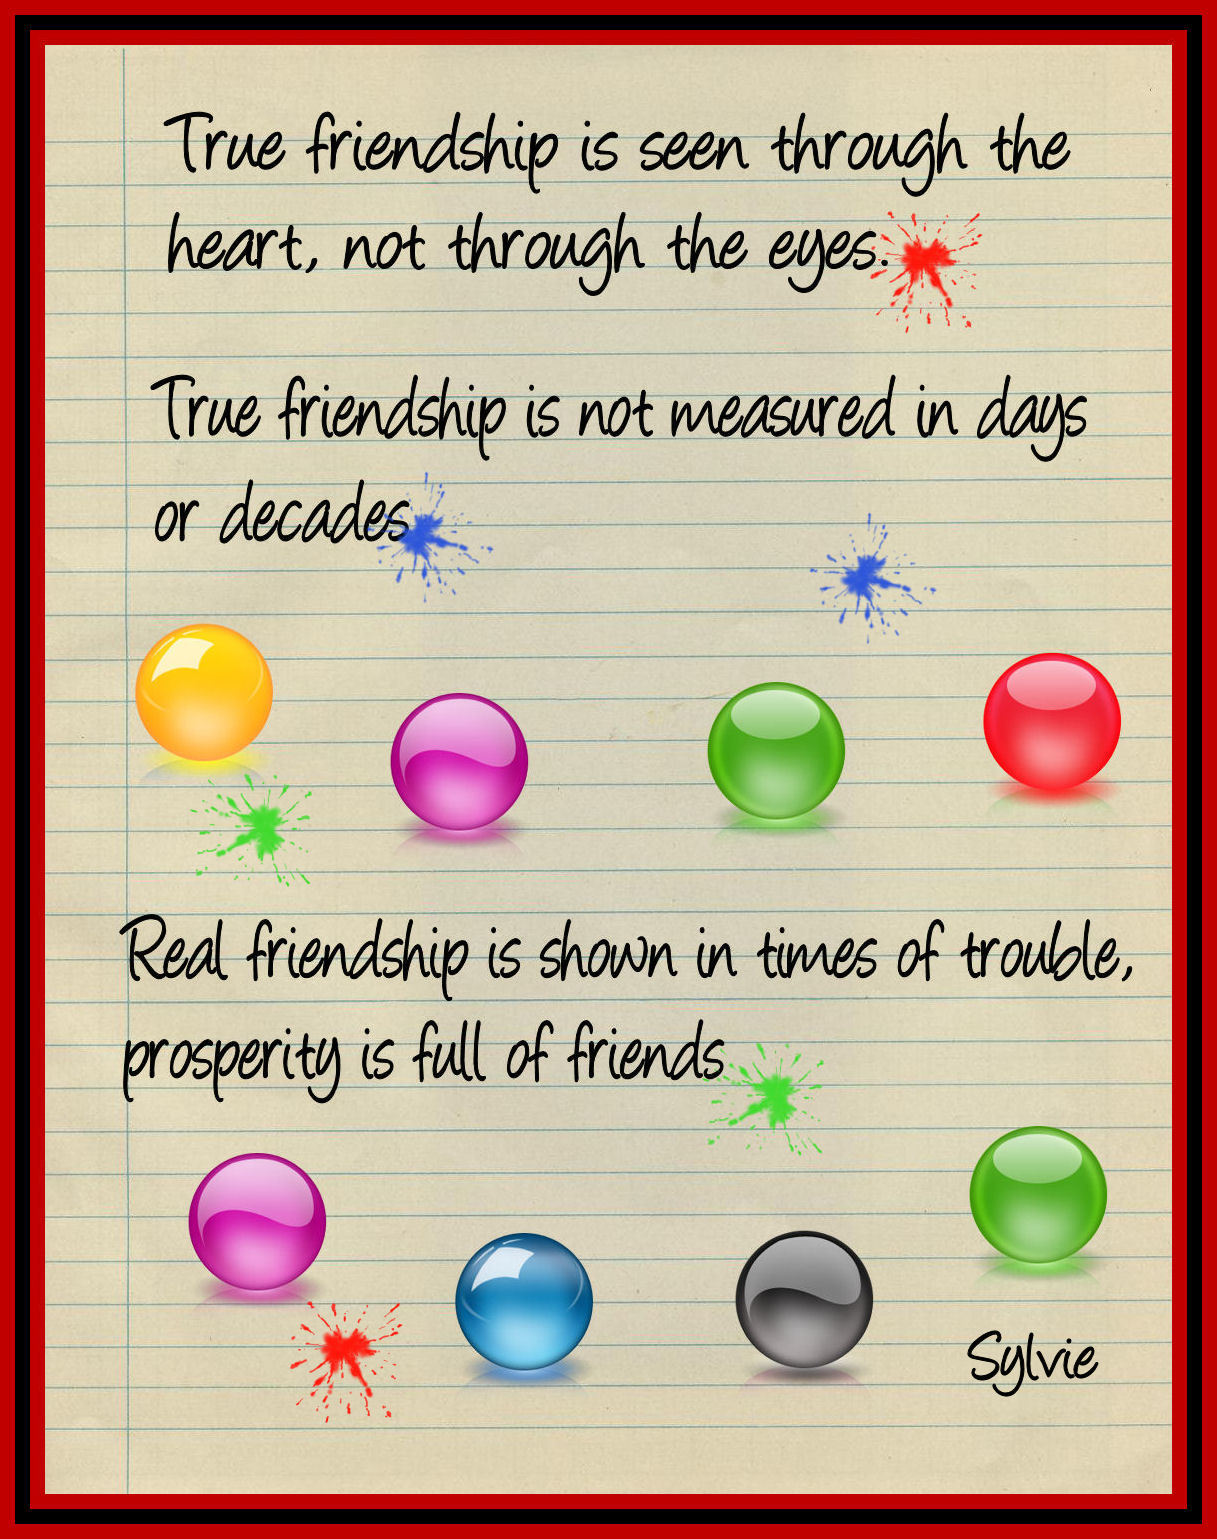 Quotes On Friendship 30 Heart Touching Friendship Quotes  Life Quotes